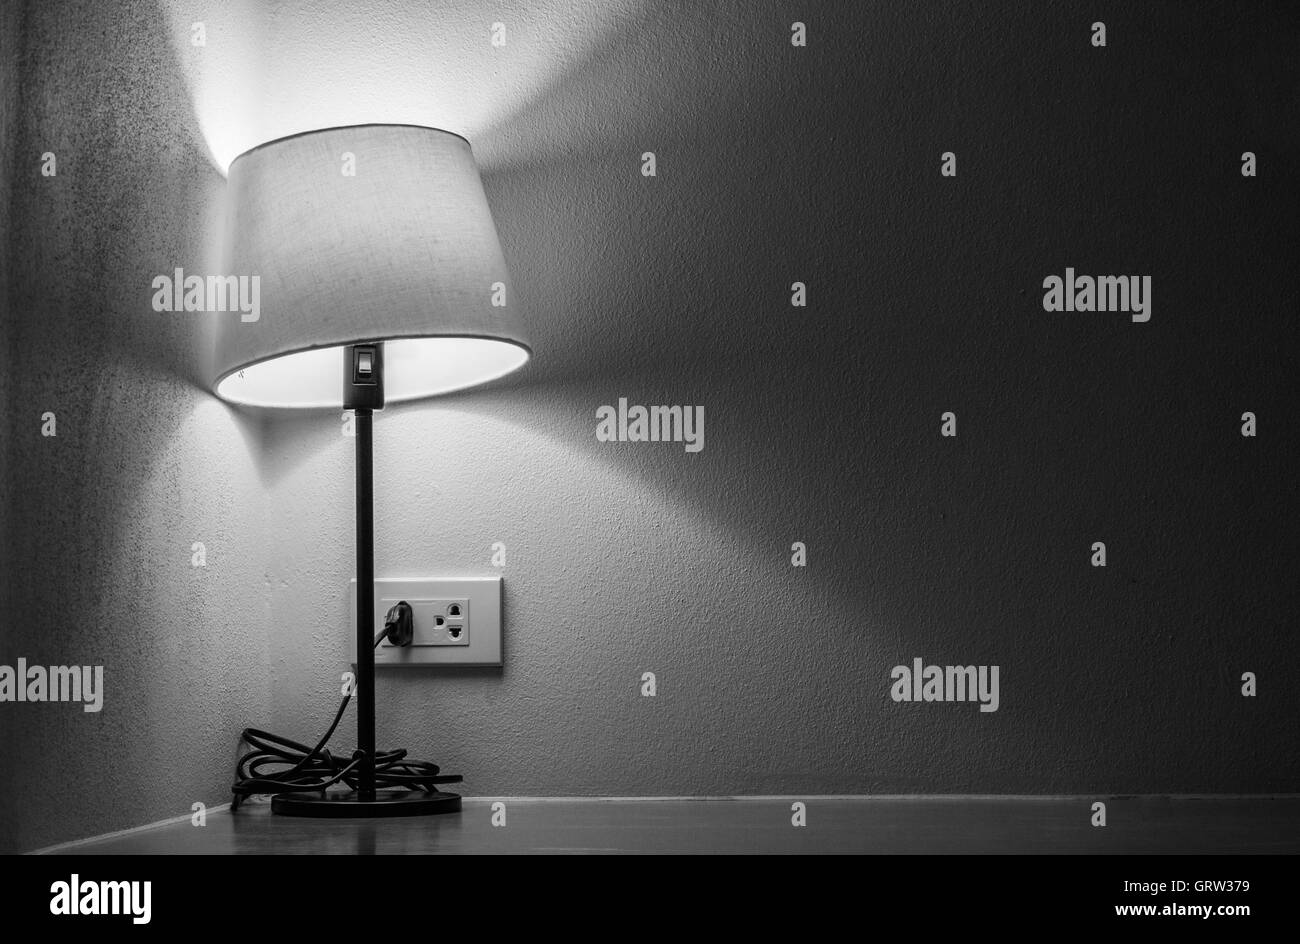 One lonely light l& in dark room - Stock Image & Torch Light Dark Stock Photos u0026 Torch Light Dark Stock Images - Alamy